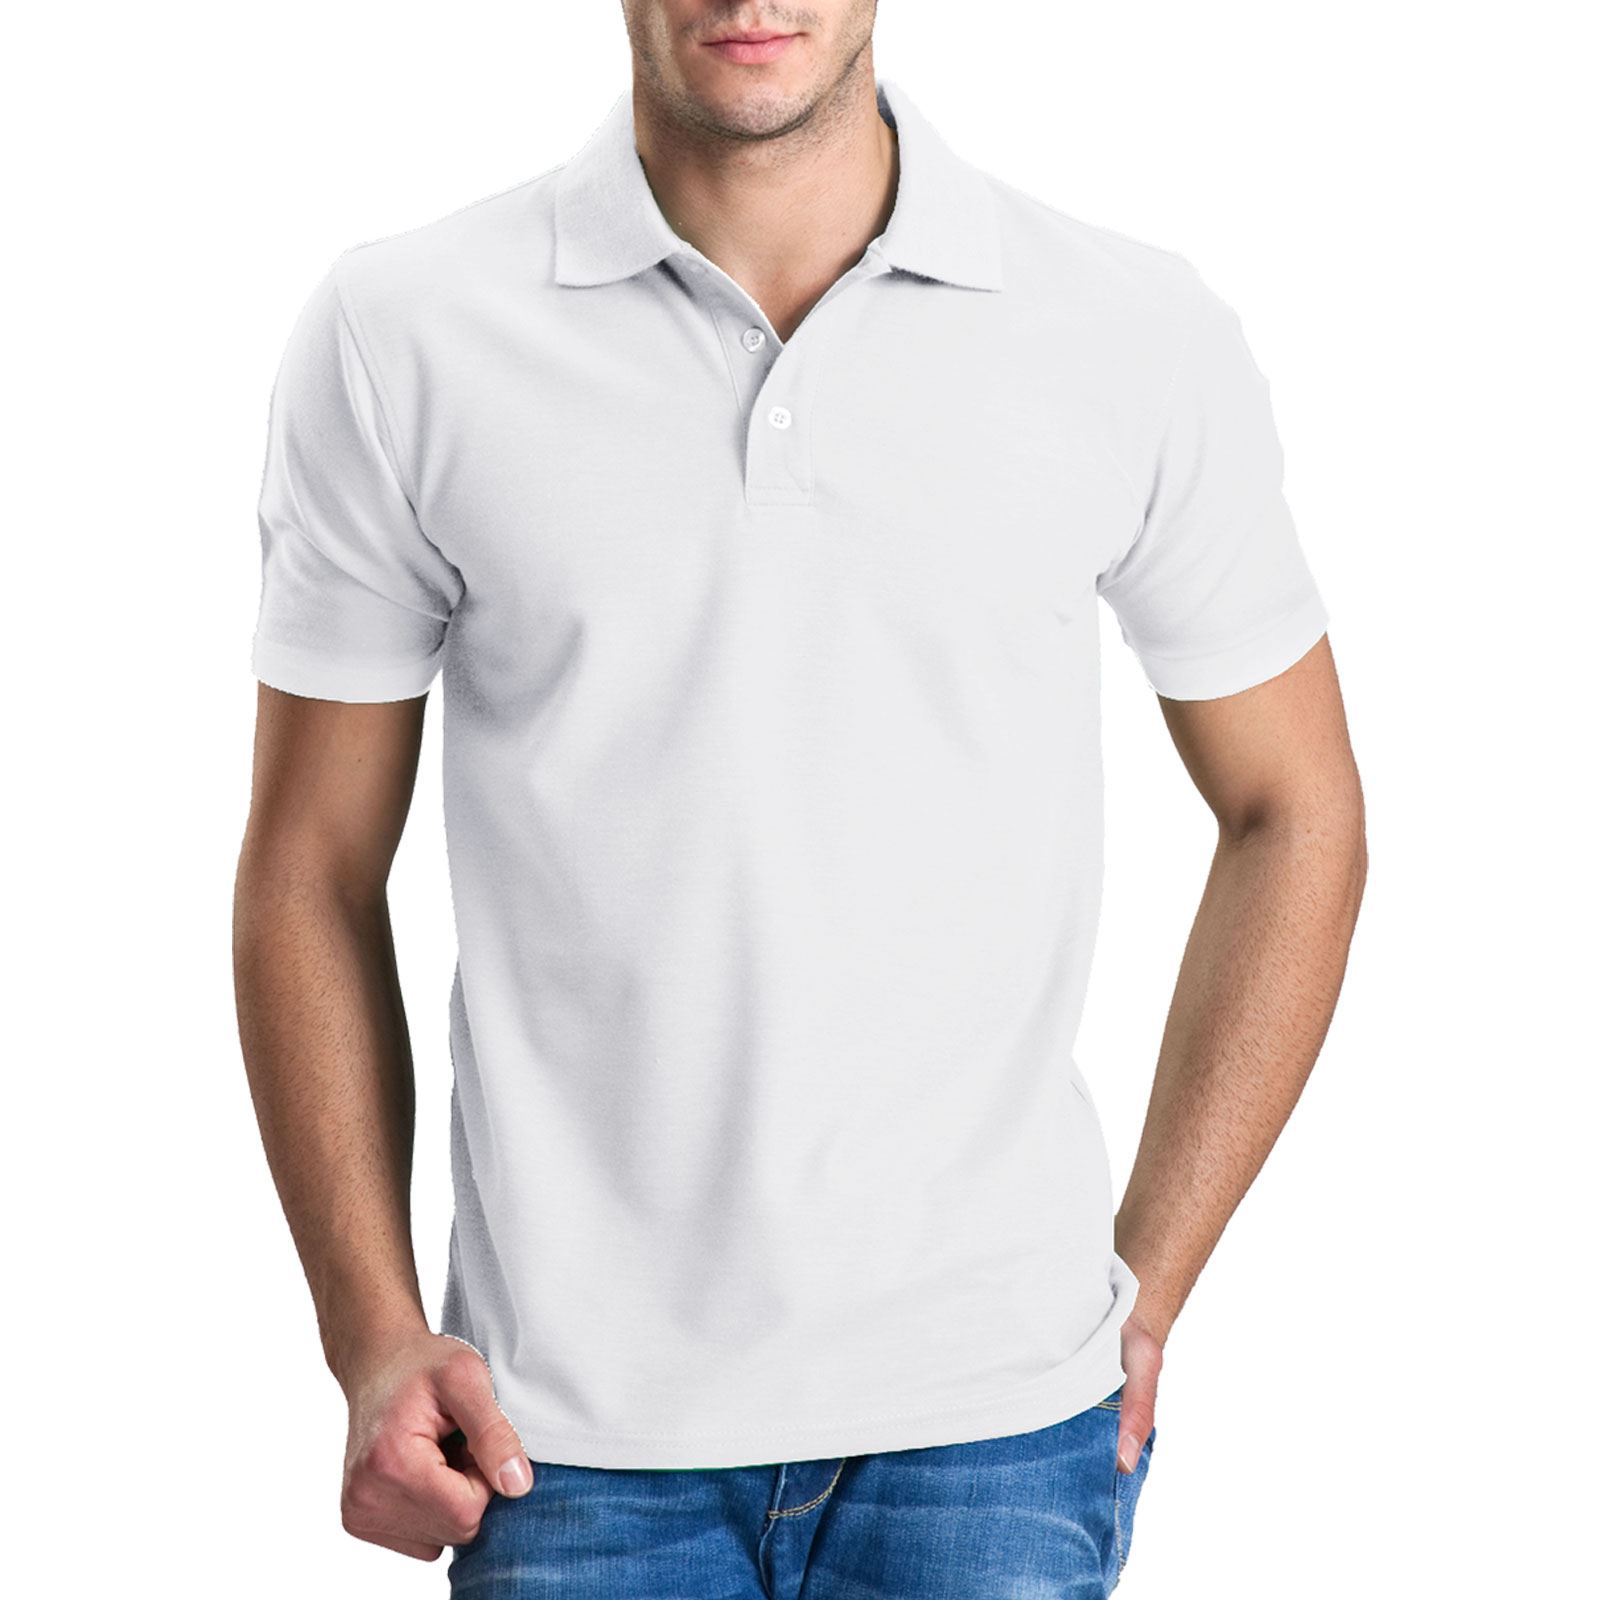 Mens polo shirt striped short sleeve top t shirt tees for Mens collared t shirts